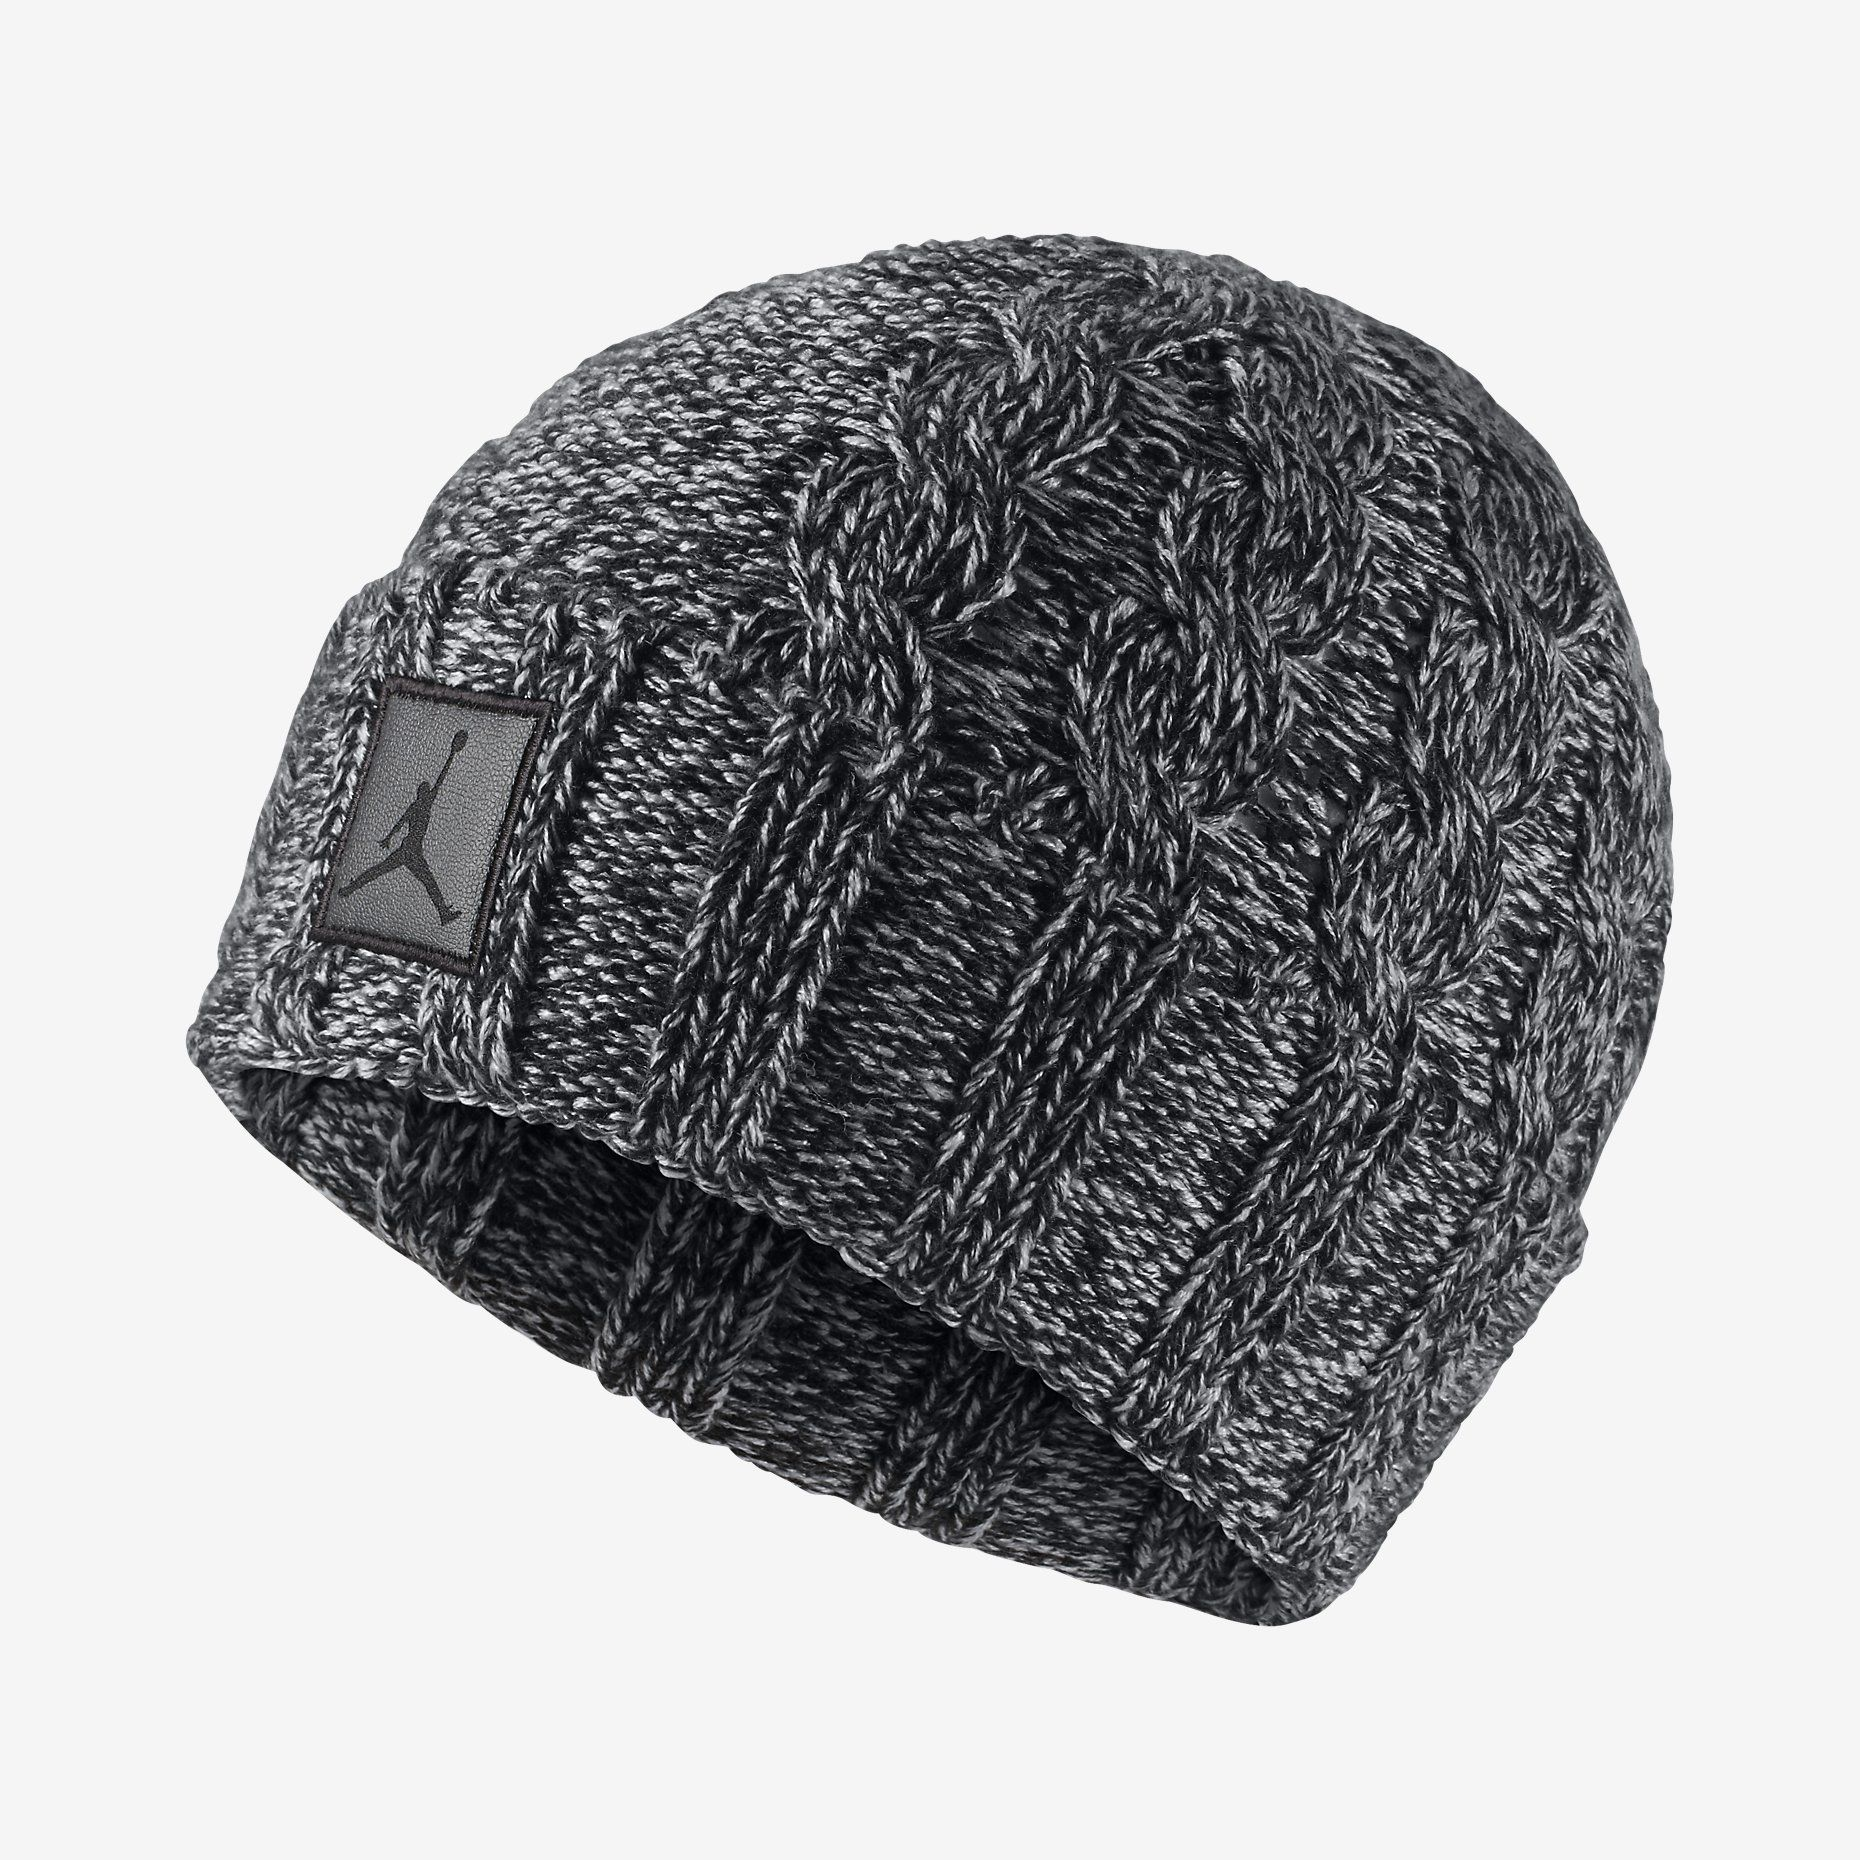 c12ba495 Jordan Heathered Cable Knit Hat. Nike Store UK | Sports accessories ...